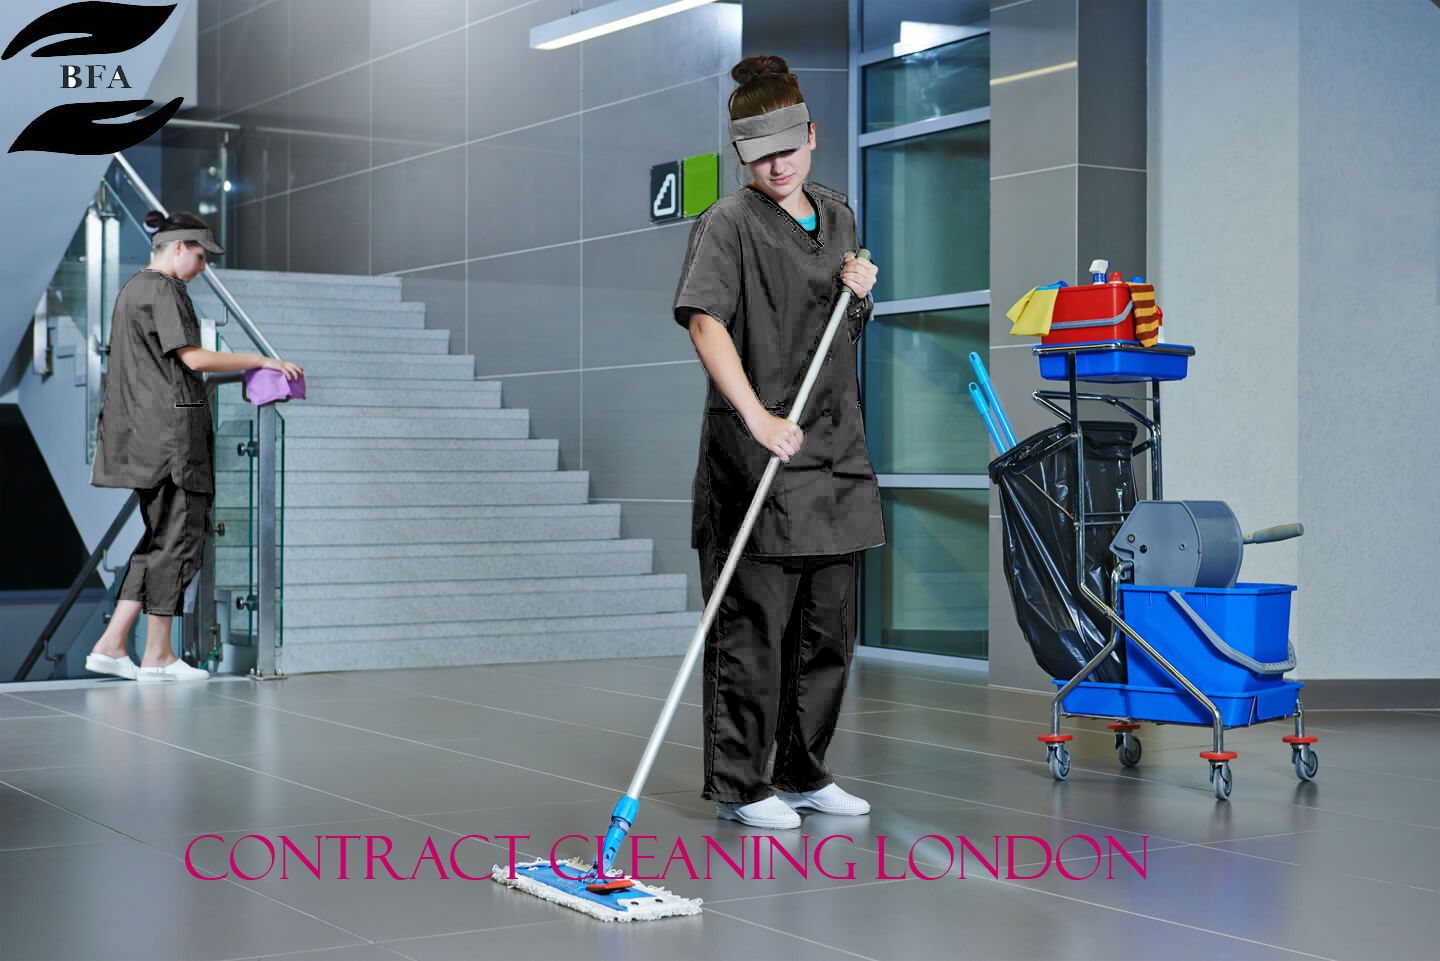 BFA Cleaning gives the best contract cleaning London at